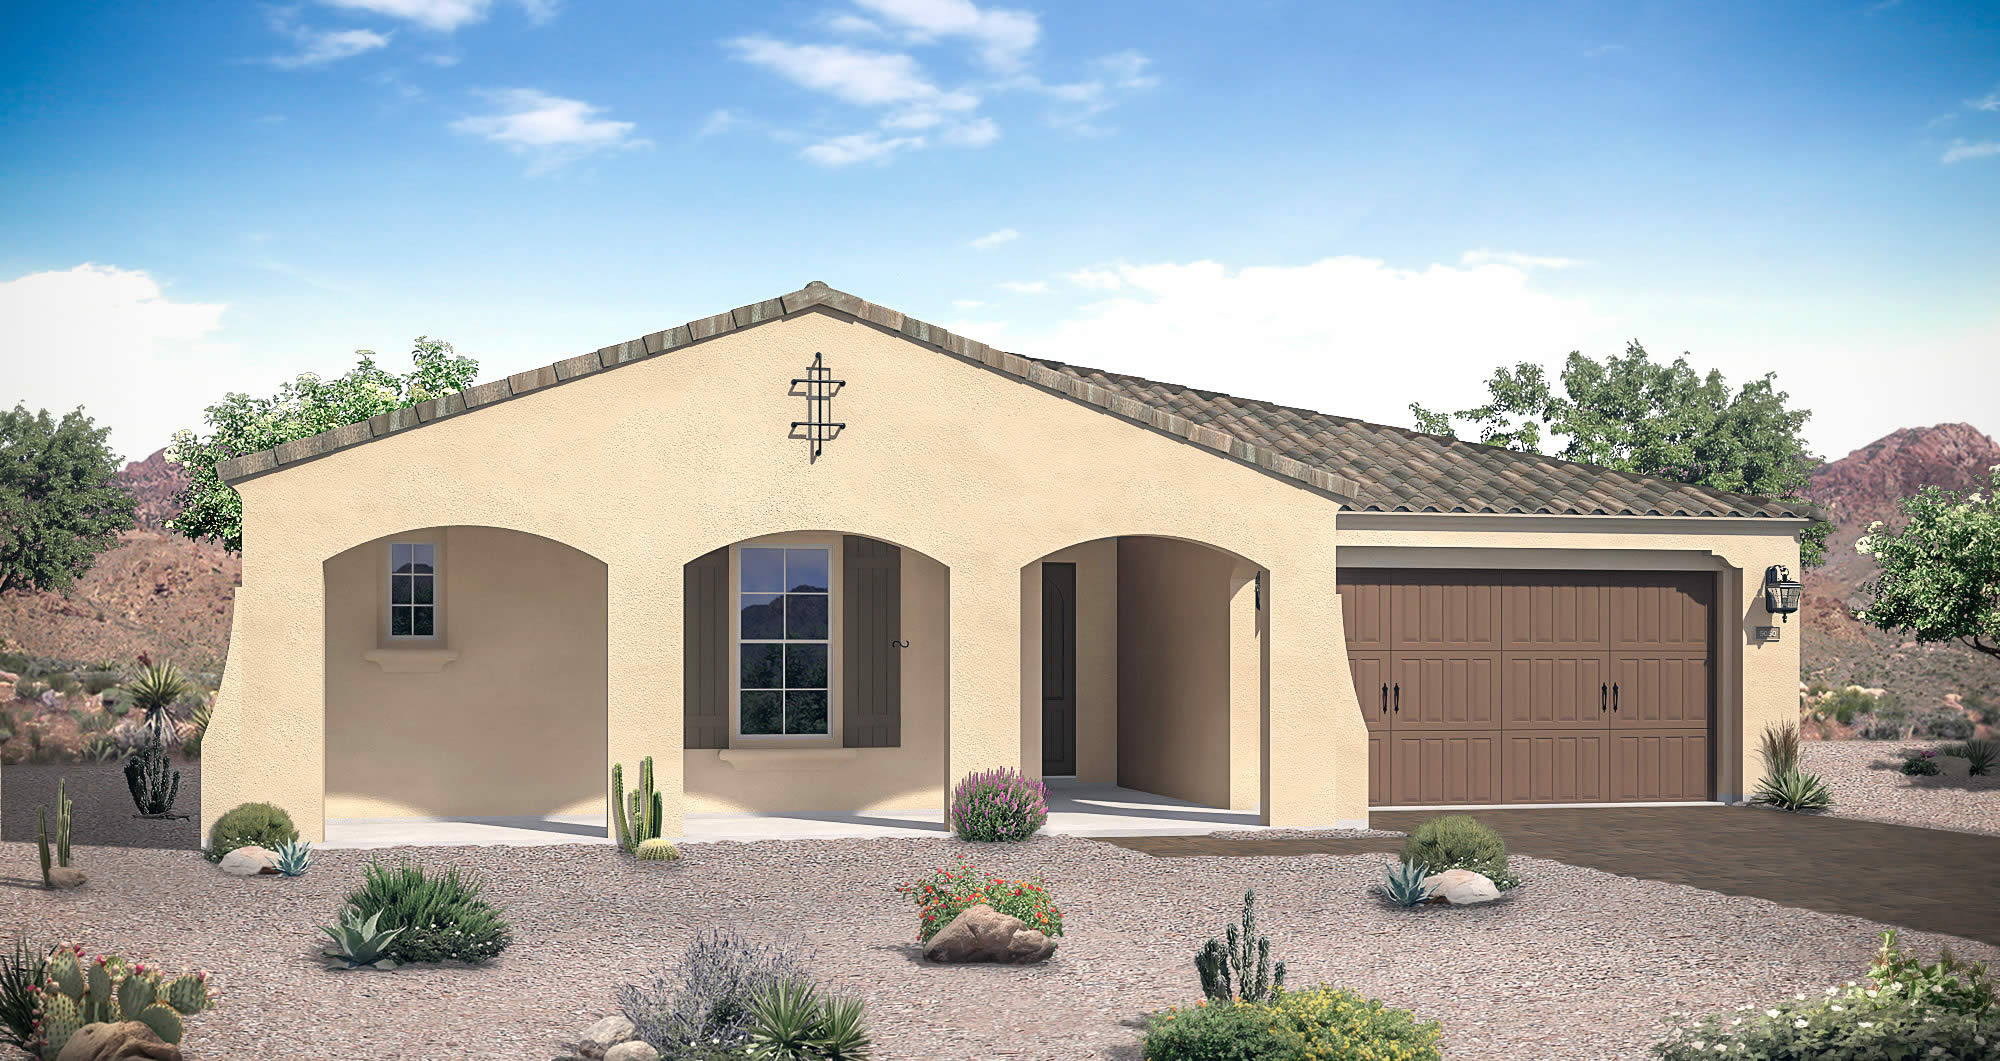 New Build Homes for Sale in Phoenix AZ New Home Construction